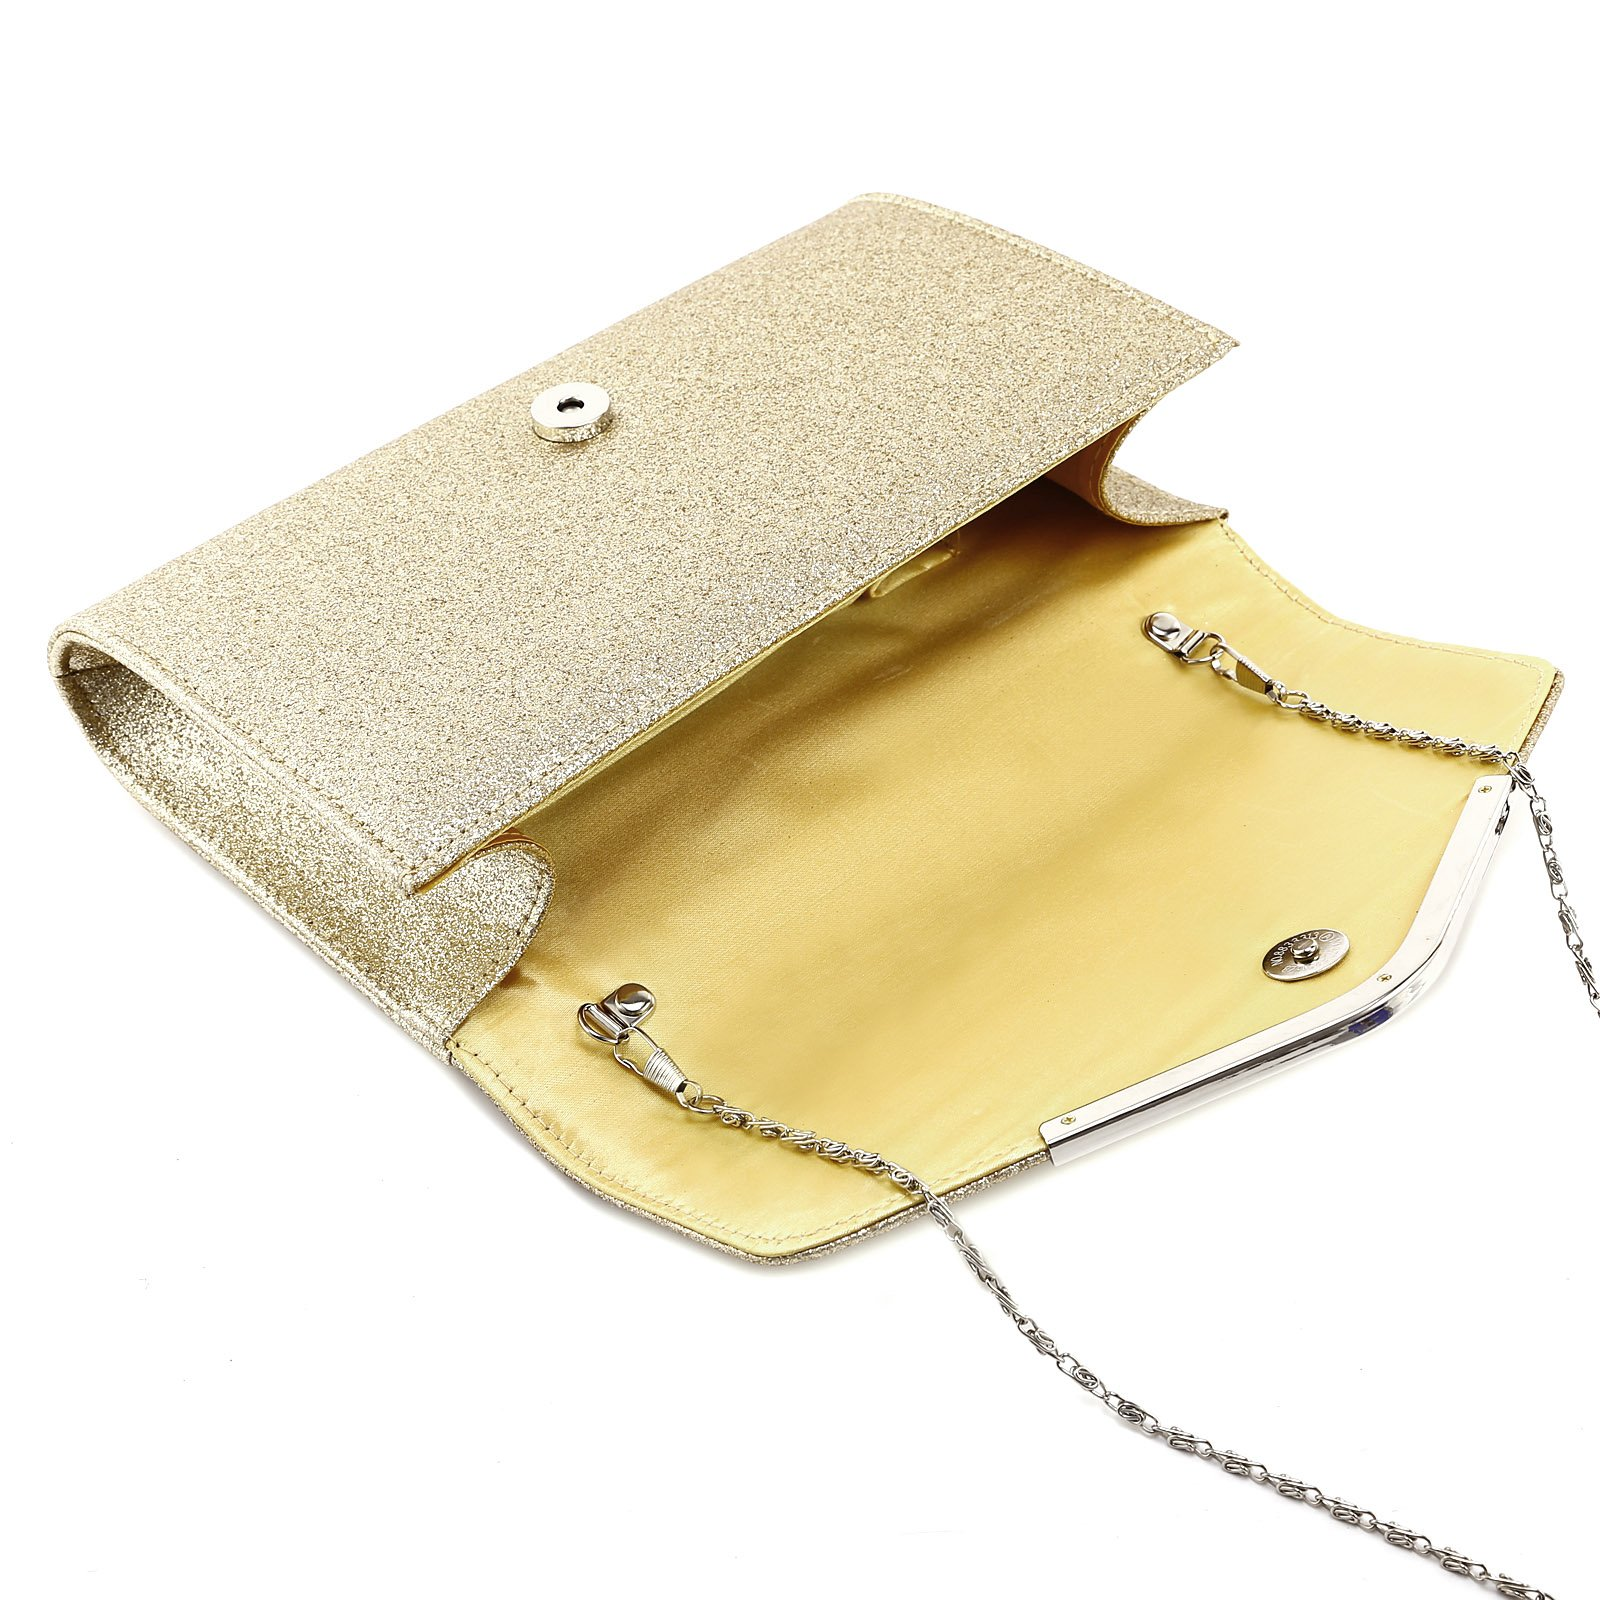 Anladia Metal-Tipped Purse Sparkle Glittered Envelope Clutch Bag Bridal Prom Party Purse by Anladia (Image #2)